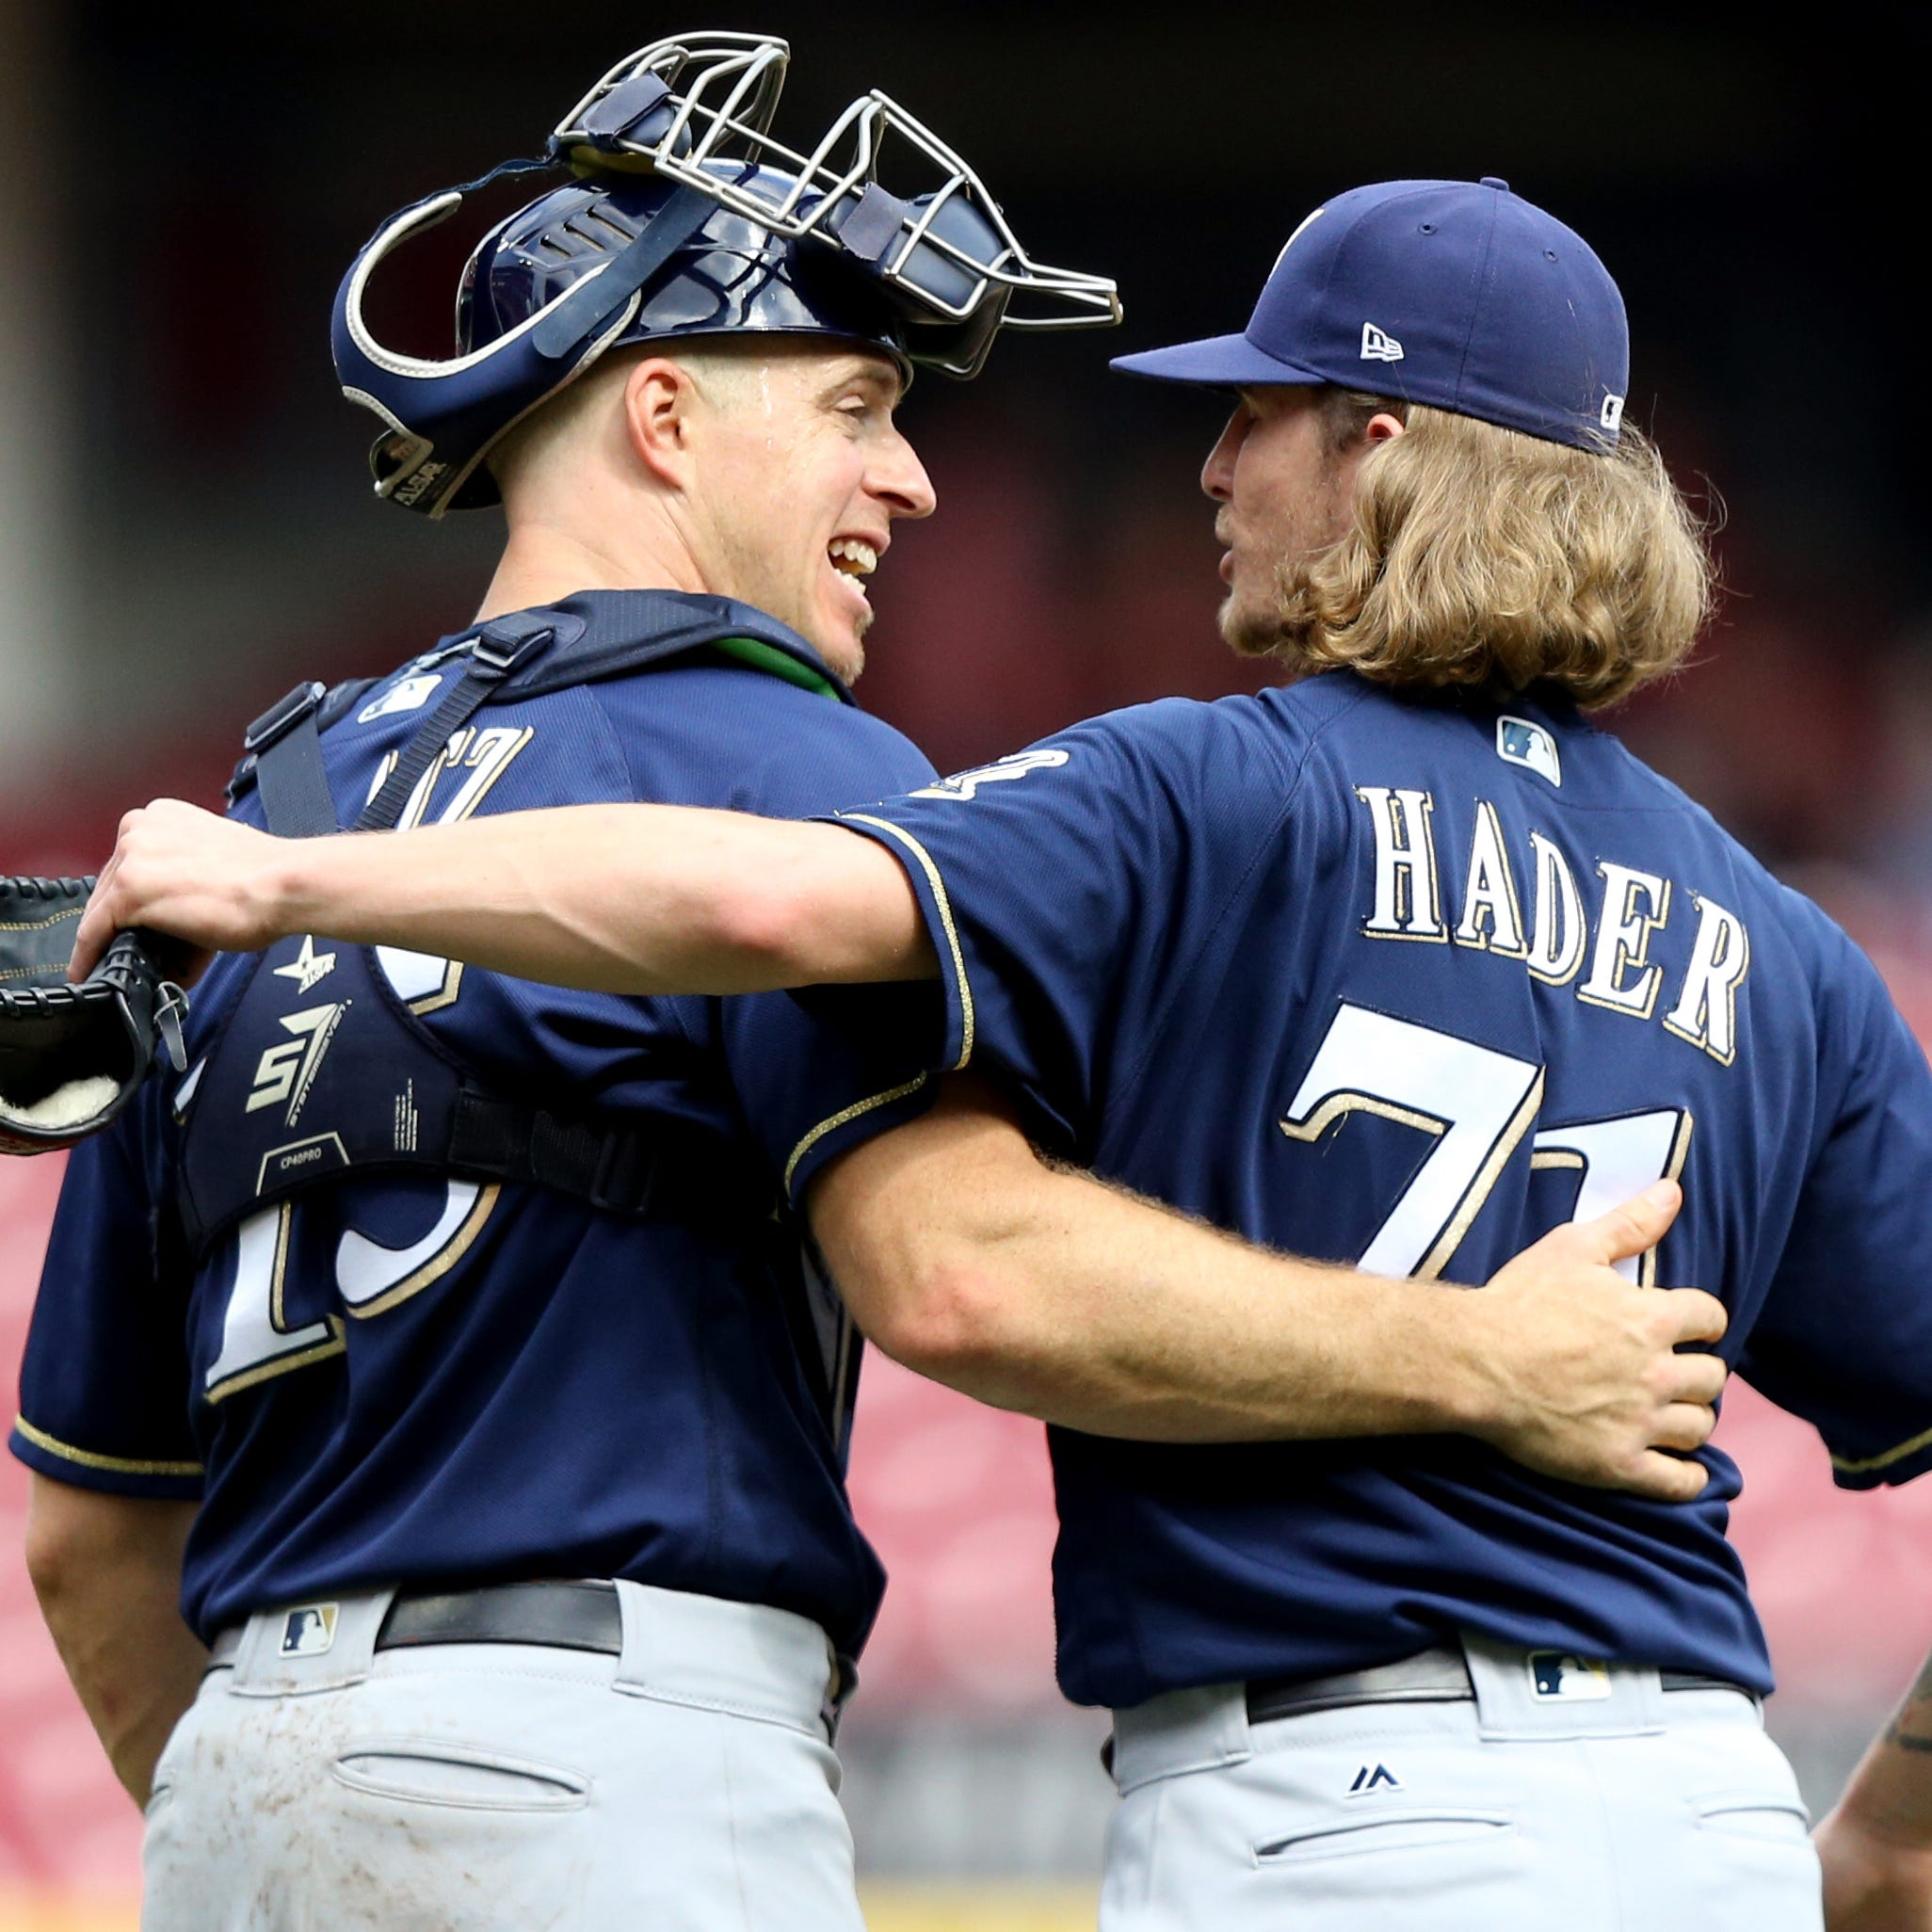 Notes: Veteran Erik Kratz caught on quickly for the Brewers